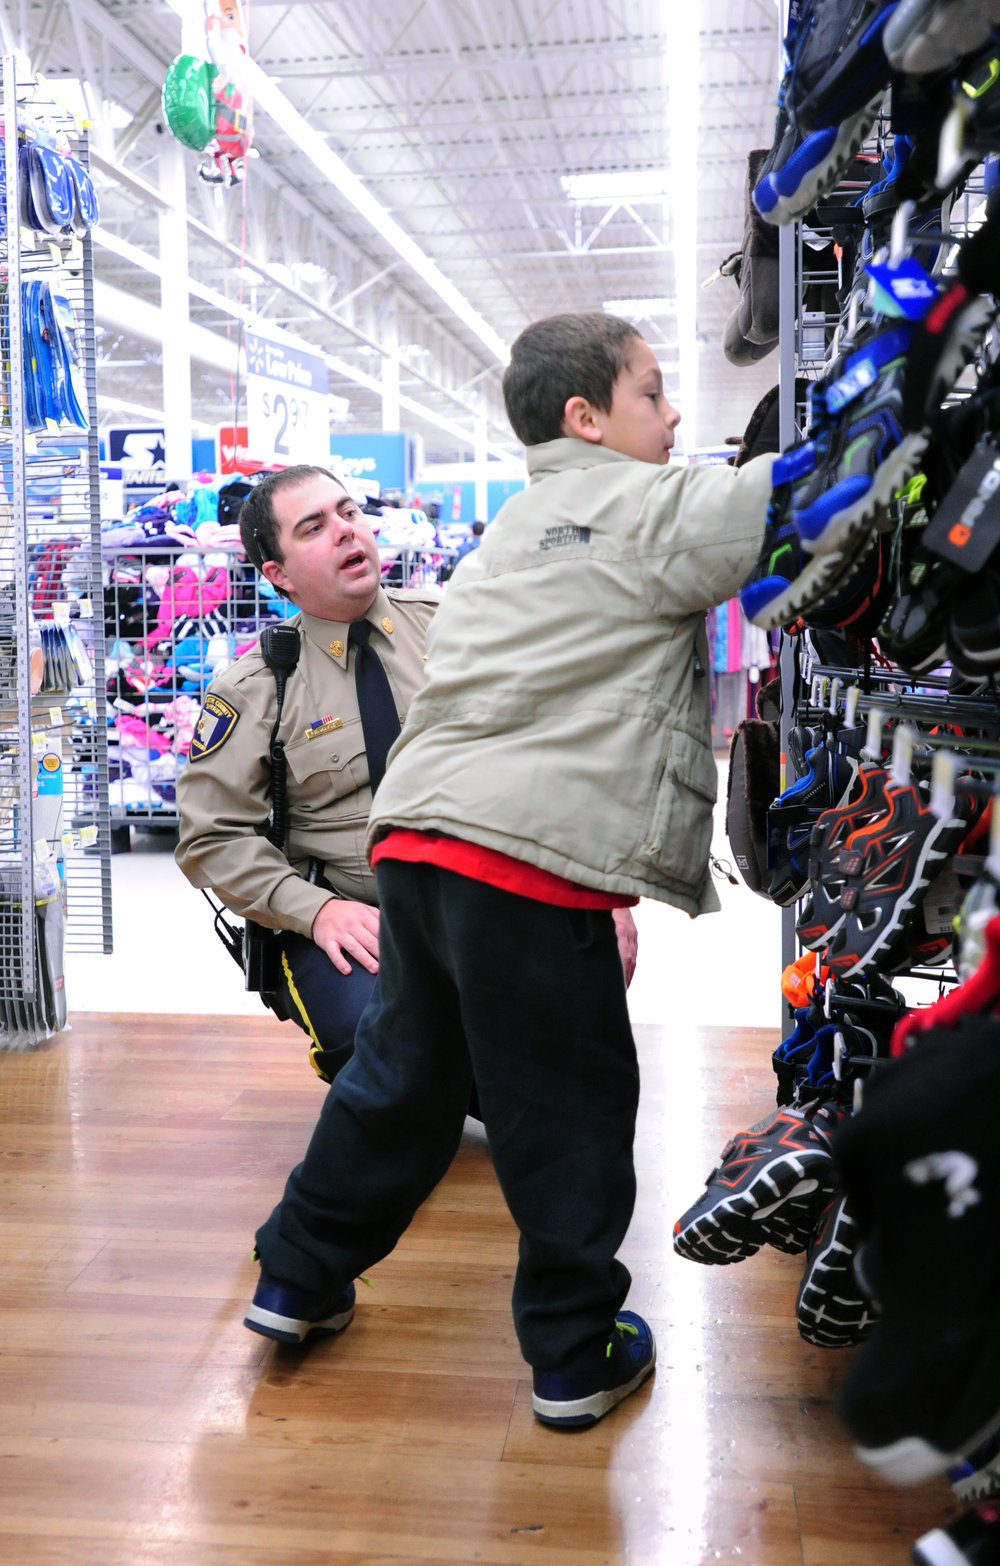 NICK INGRAM/Citizen photo Platte County Sheriff's Office deputy Richard Mayse, left, helps pick out shoes with Jackson Schafer, 7, at a Wal-Mart Supercenter on Saturday, Dec. 3 in Kansas City, Mo.